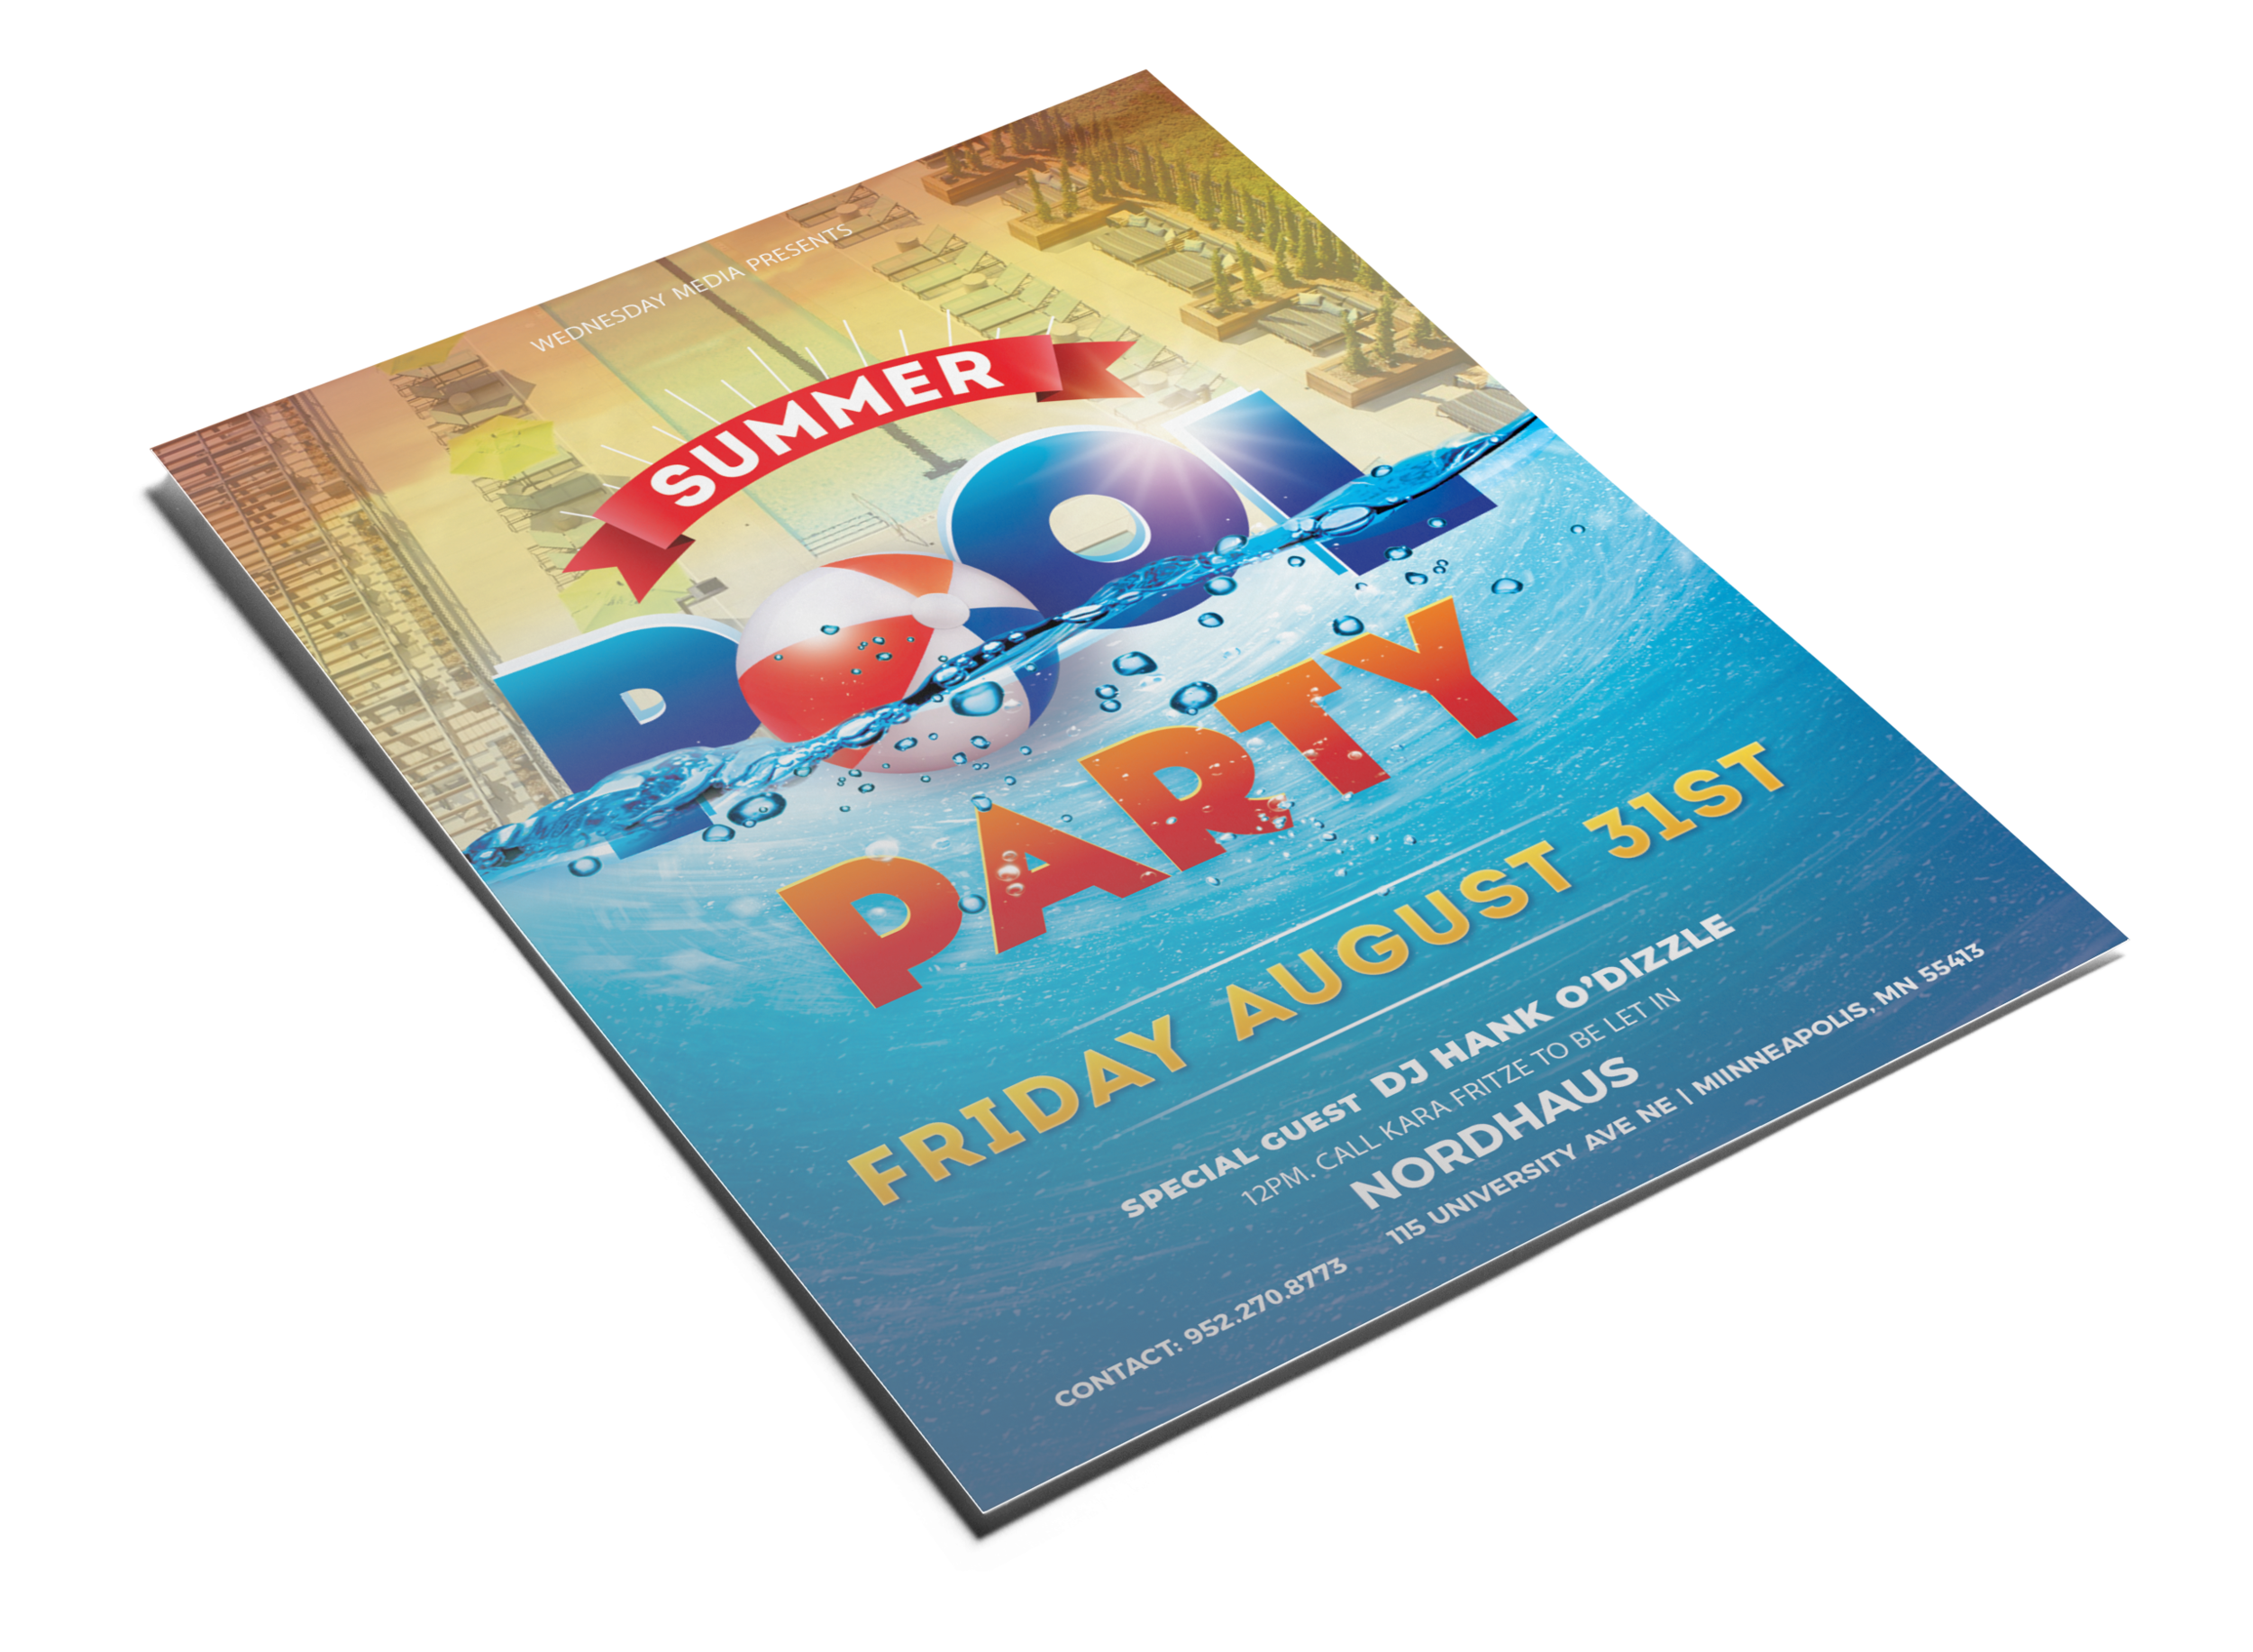 Pool Party by Wednesday Media mockup.png